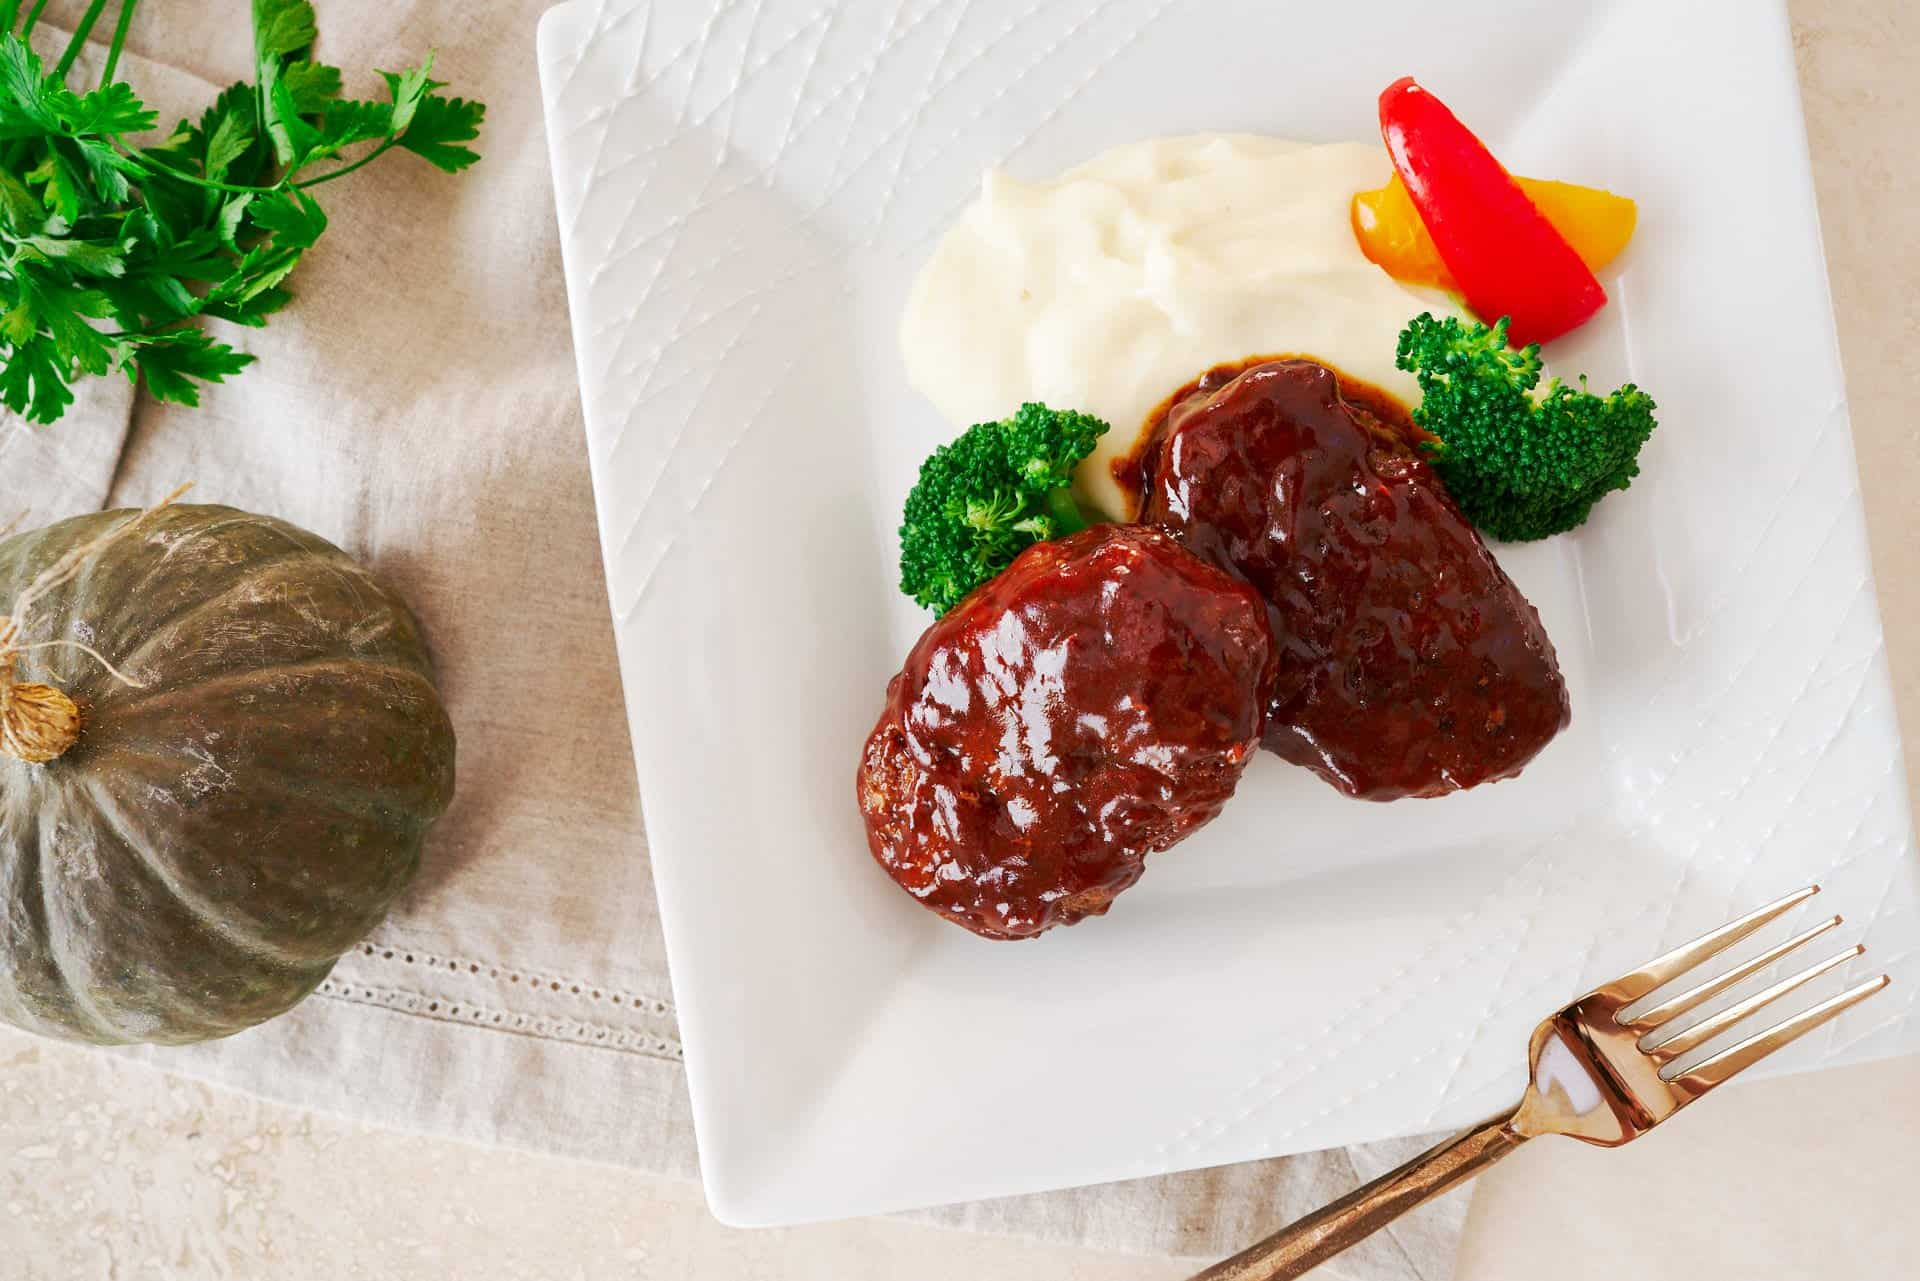 Hamburg Steak is one of the most popular home cooked meals in Japan and this easy recipe will show you how to make this juicy patty with a flavorful sweet and tangy sauce.